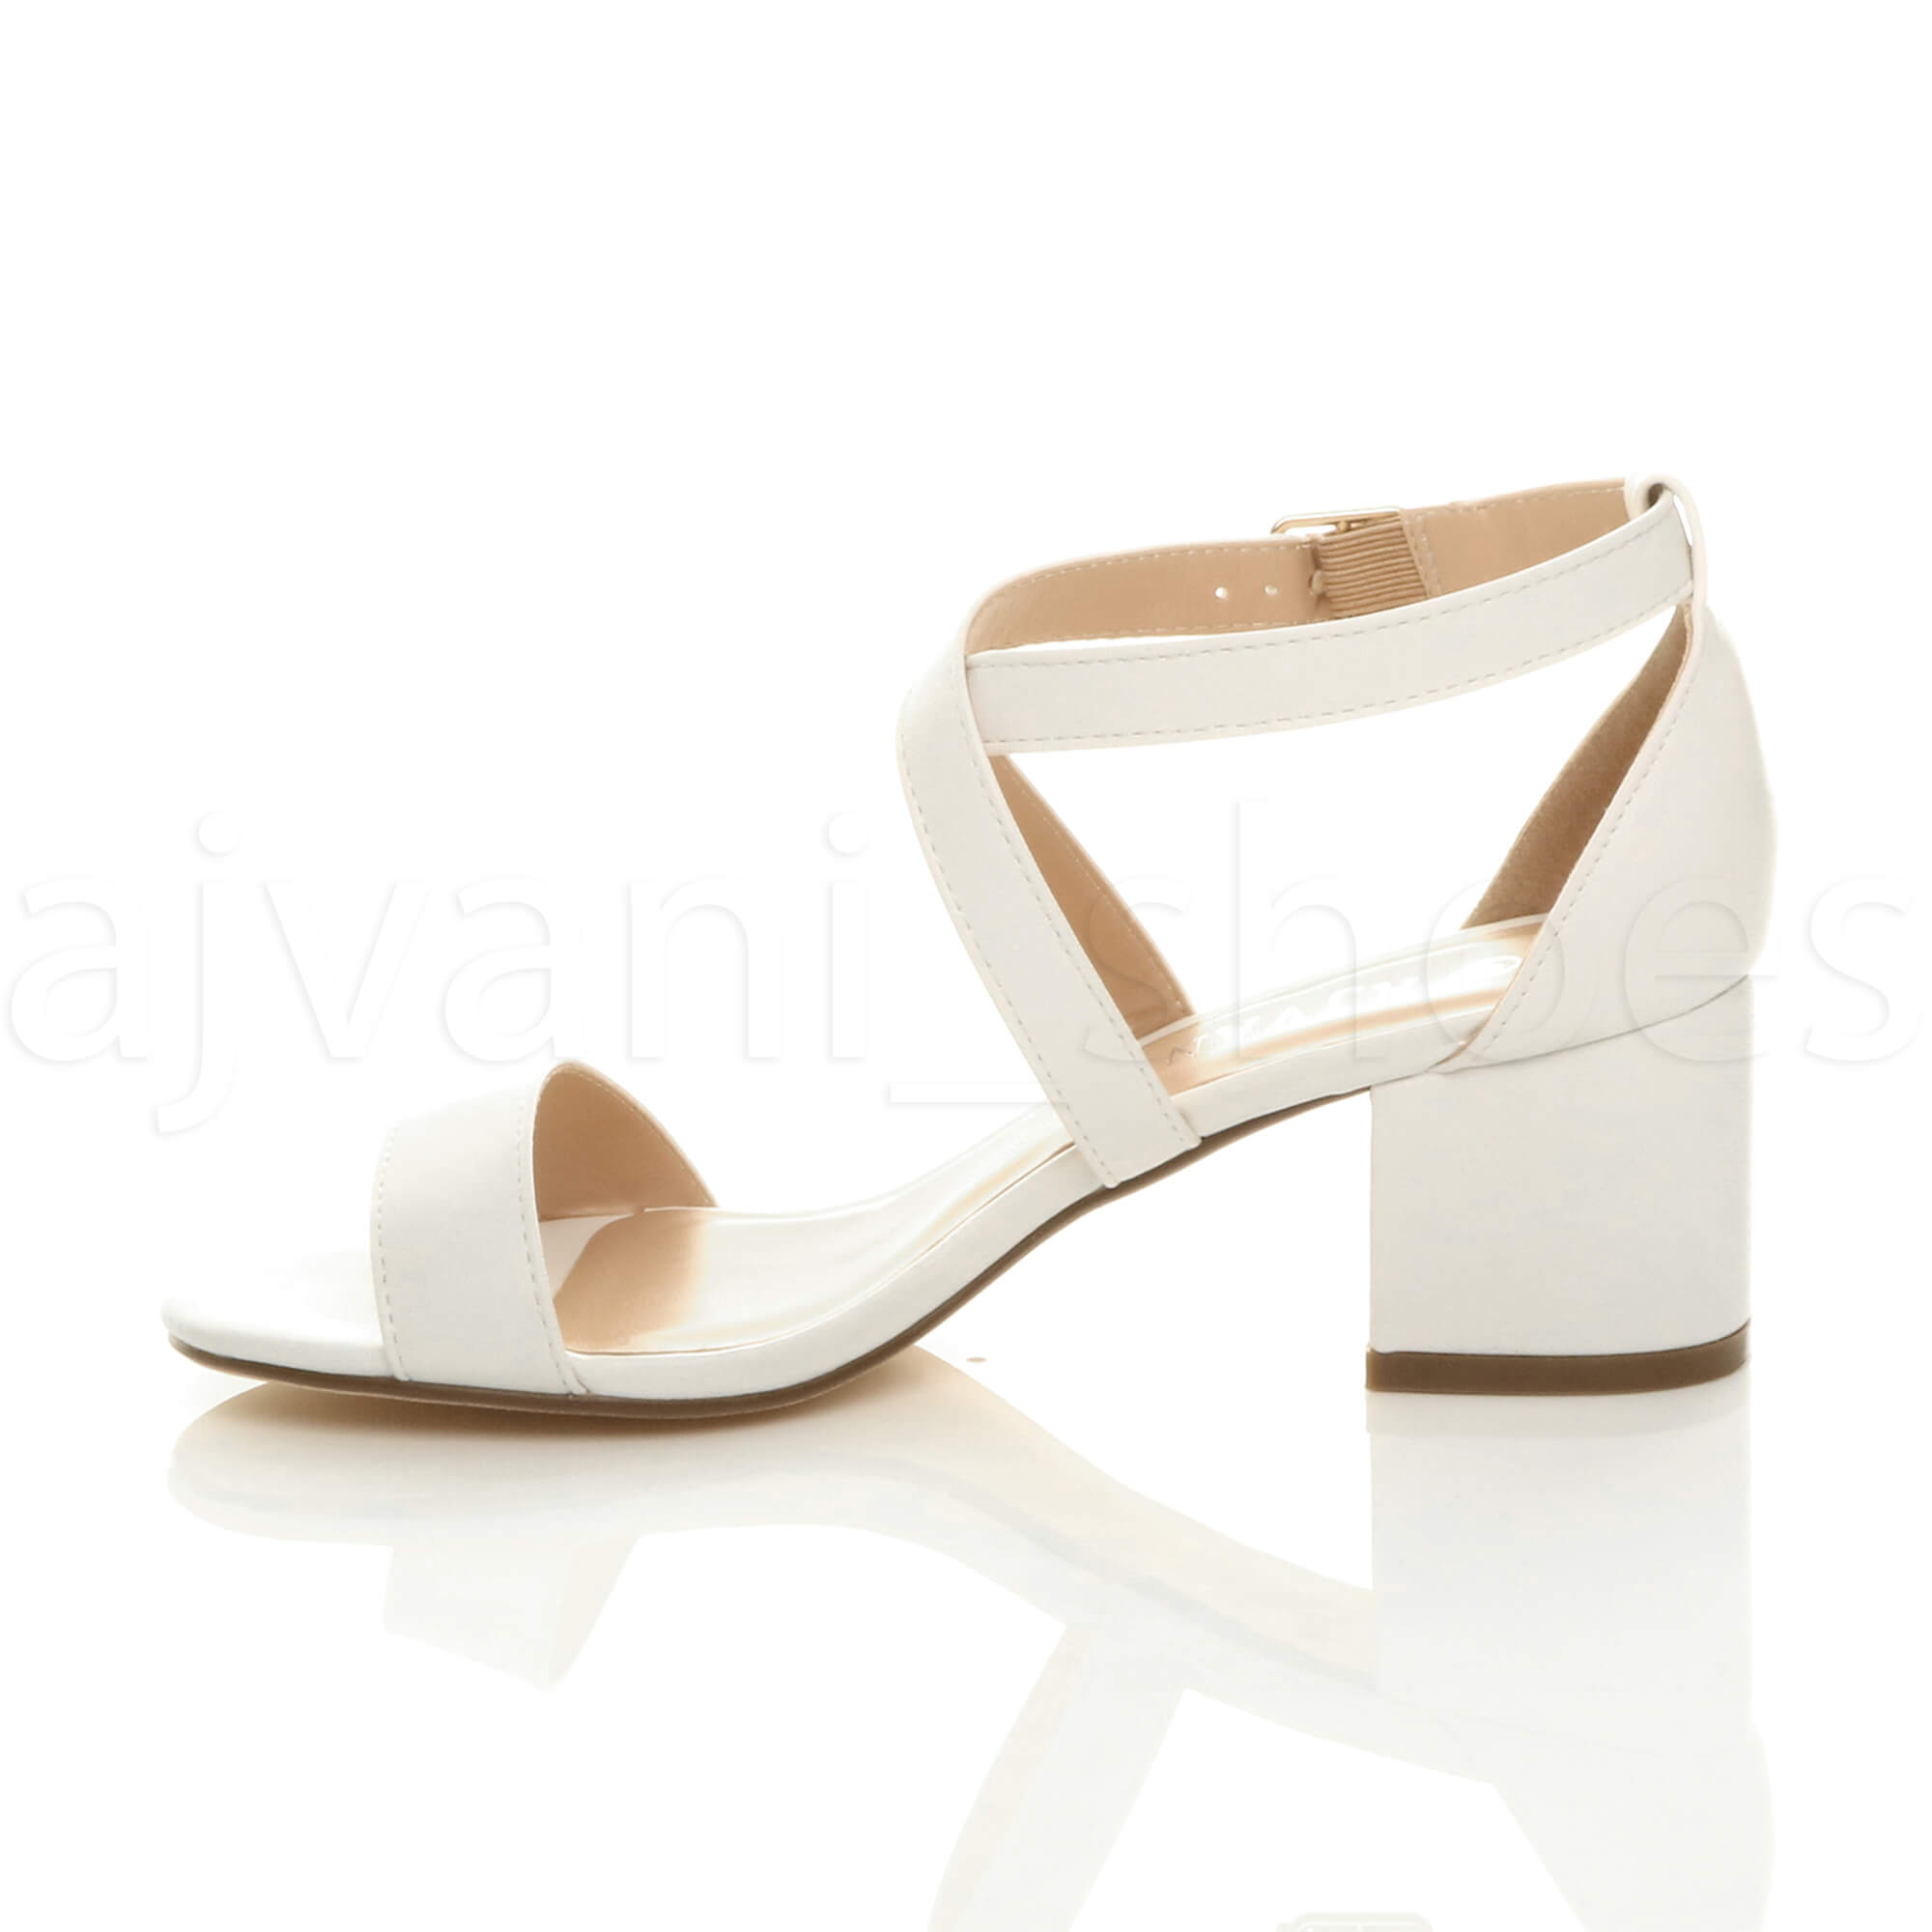 WOMENS-LADIES-MID-LOW-BLOCK-HEEL-CROSS-STRAPS-PARTY-STRAPPY-SANDALS-SHOES-SIZE thumbnail 99